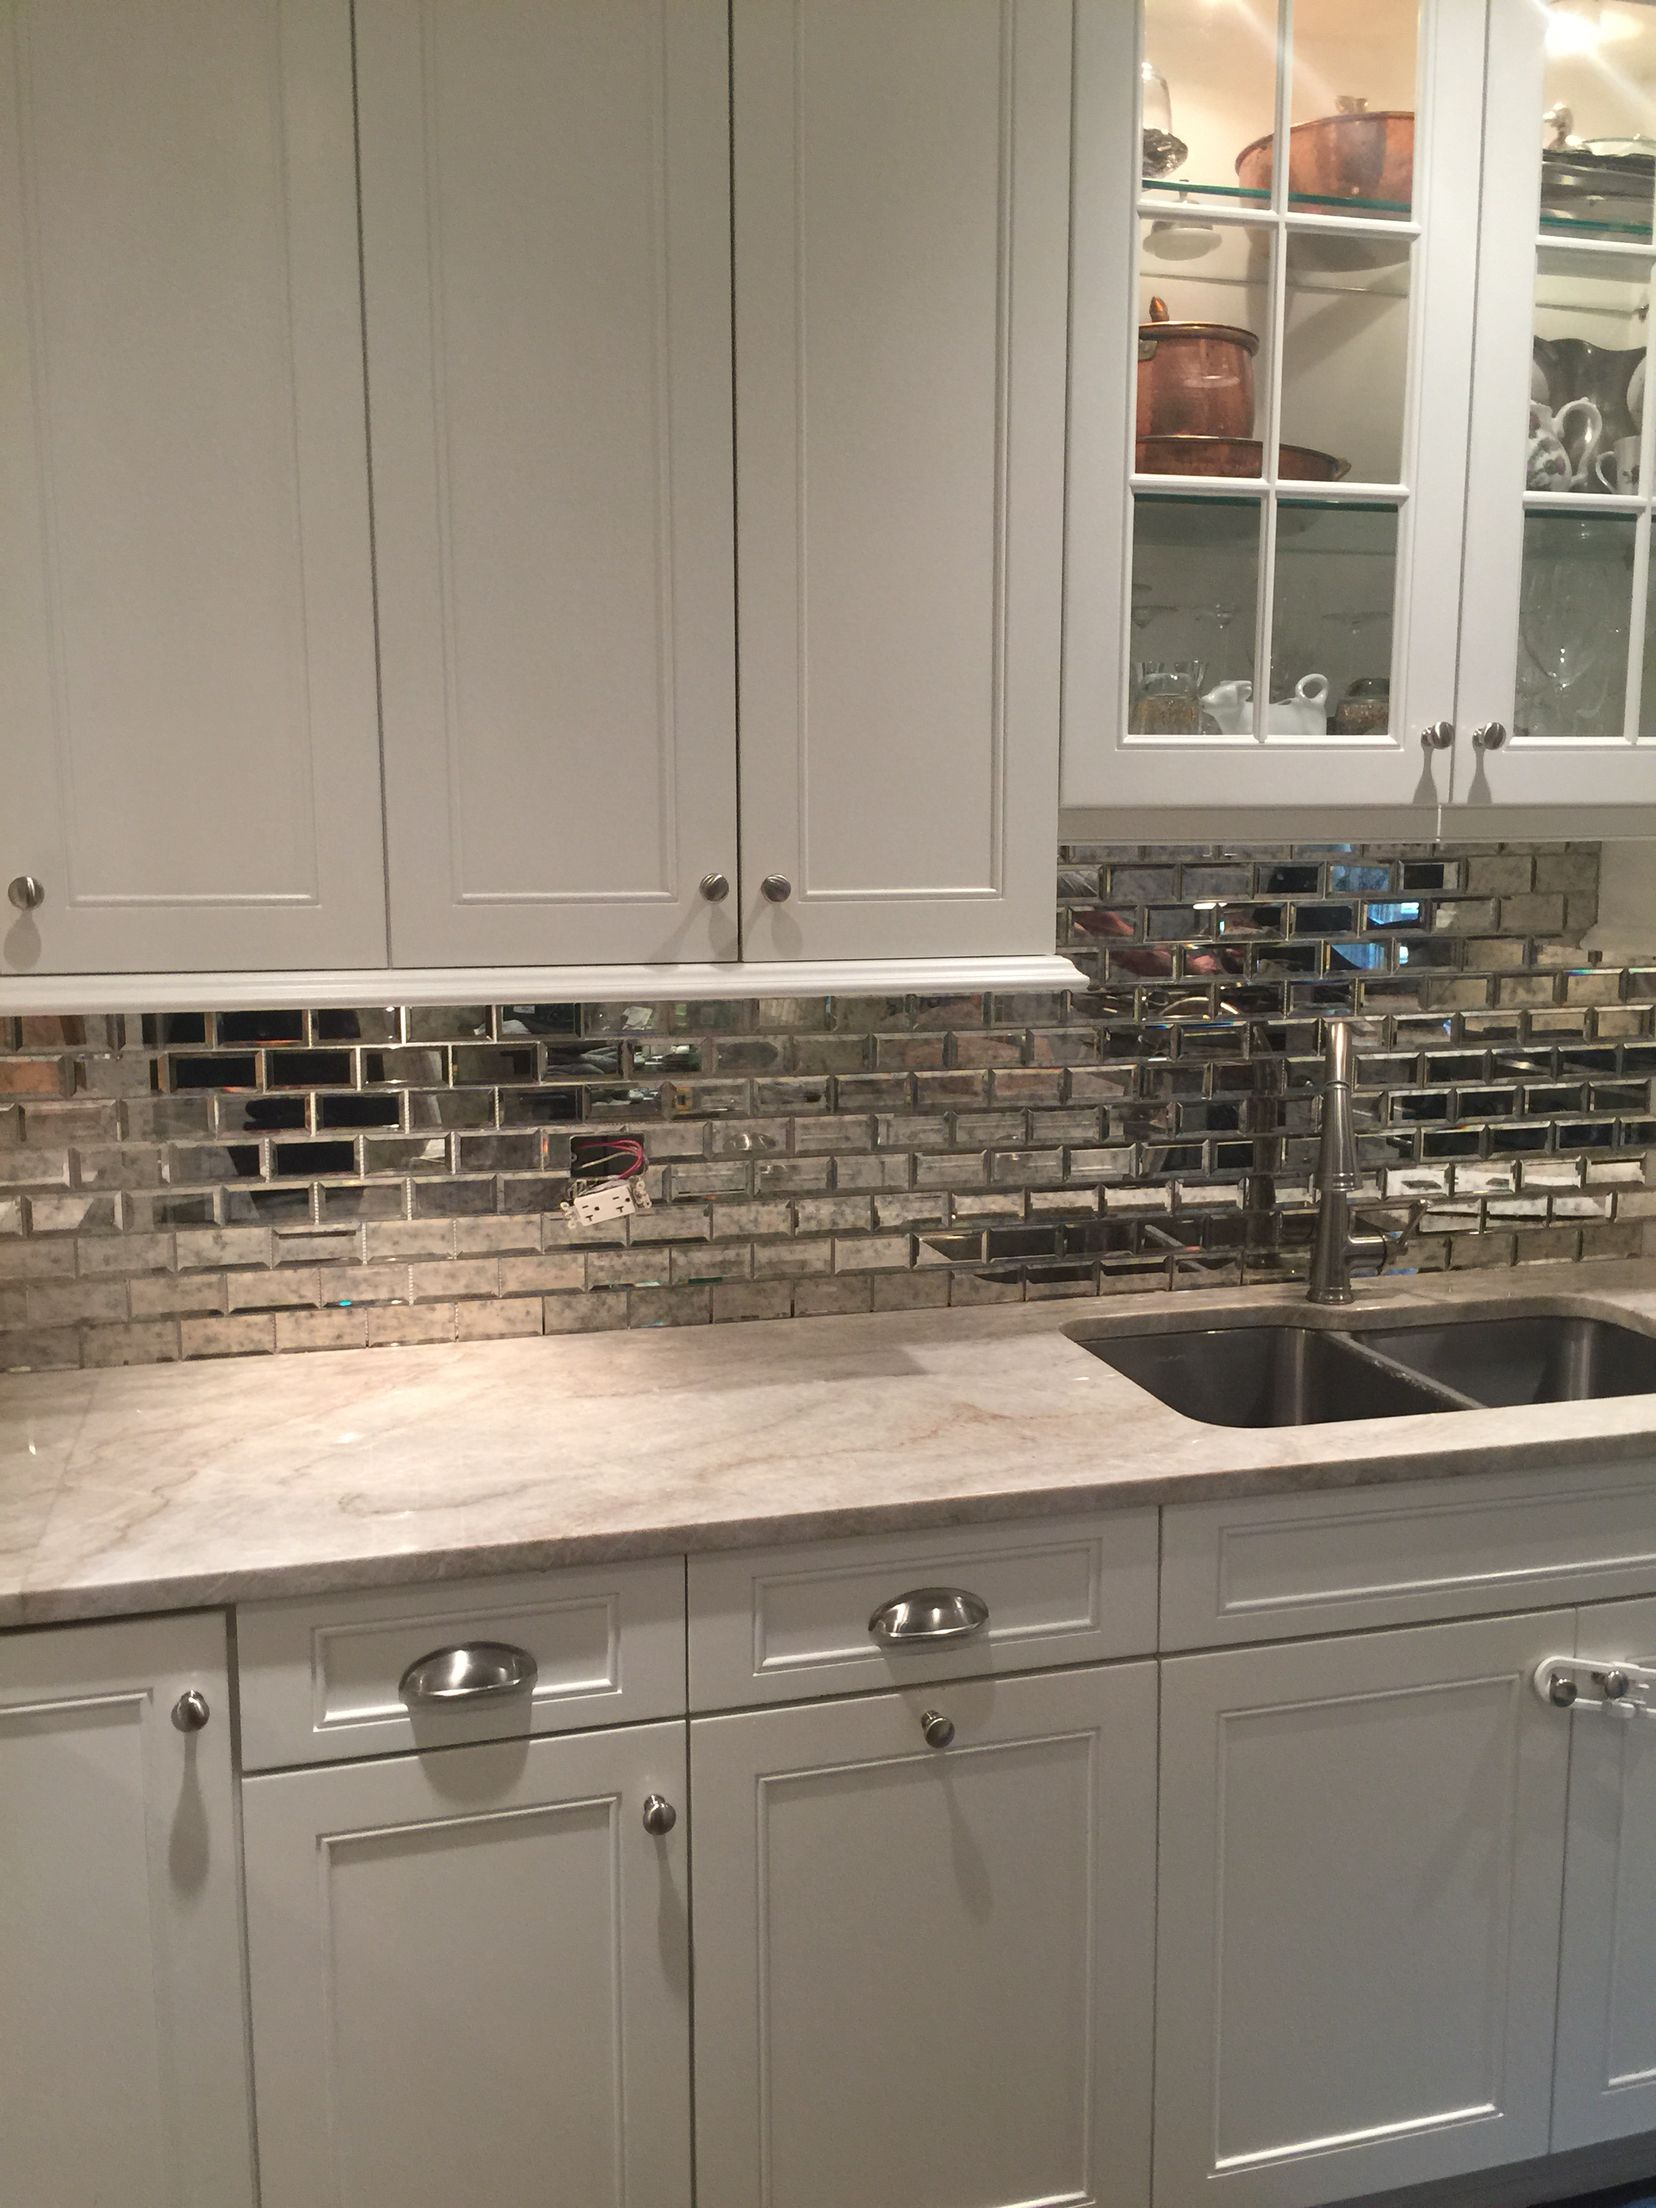 Simply White Kitchen Cabinet Taj Mahal Quartzite Mirrored Subway Tile